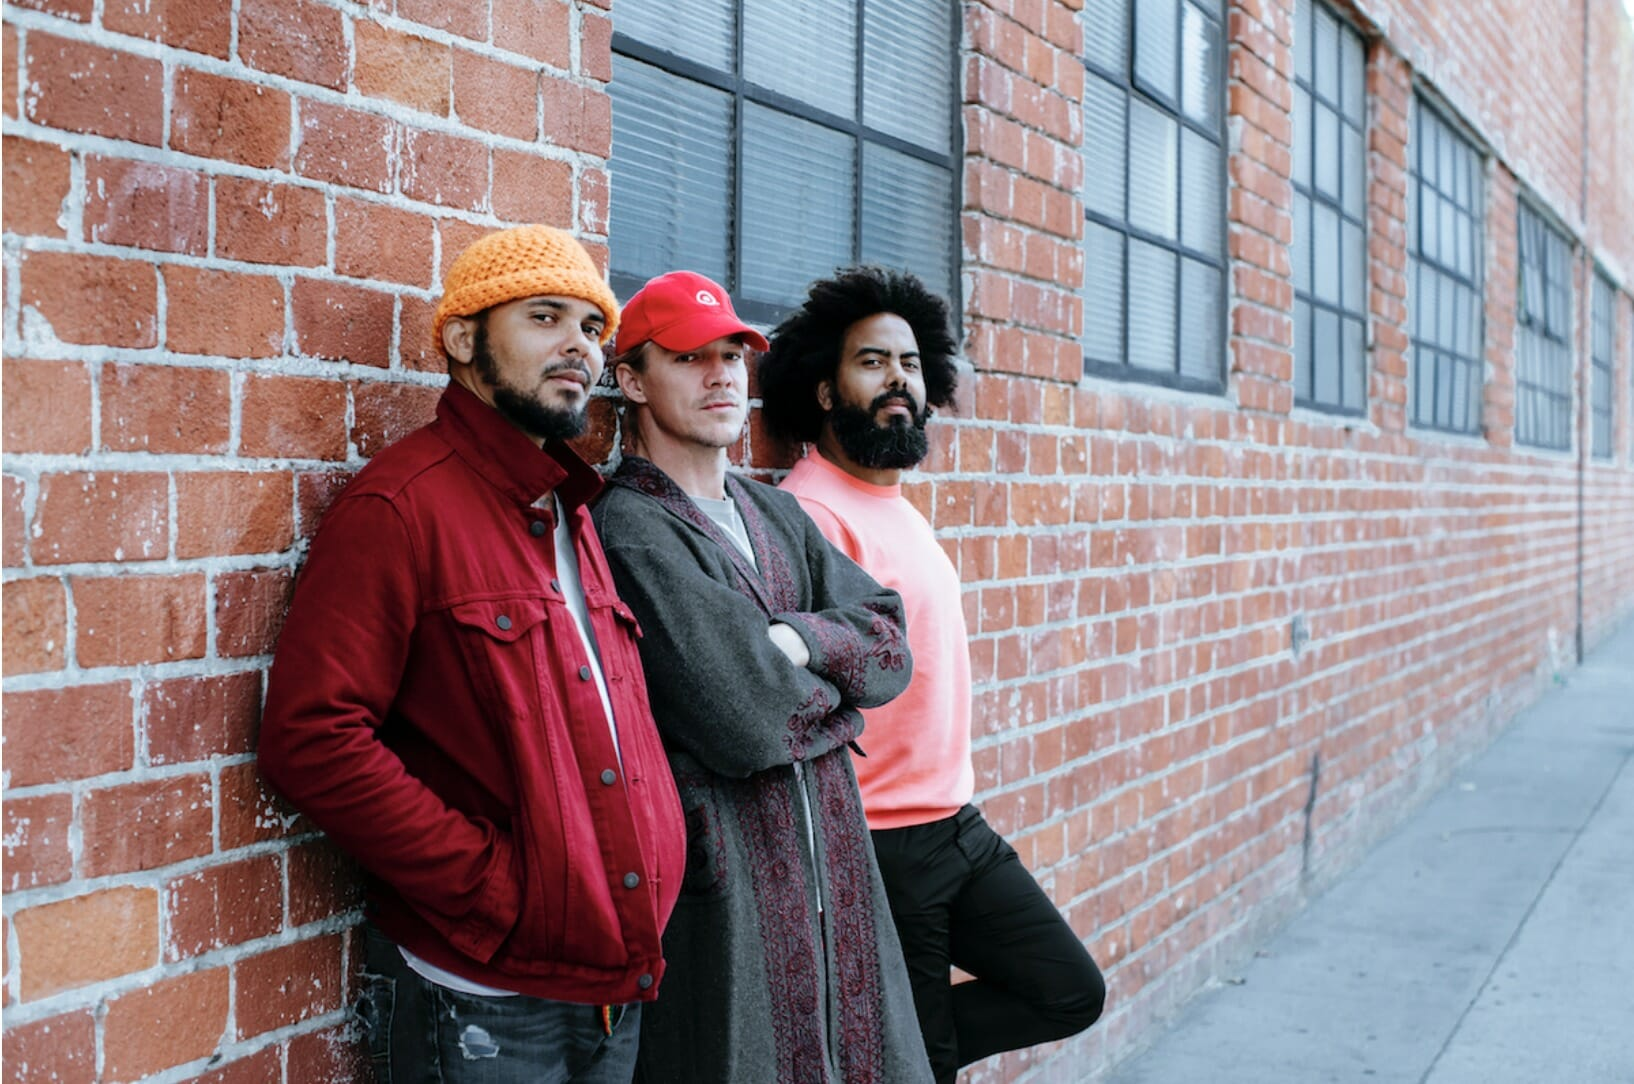 Diplo teases upcoming Major Lazer and J Balvin collaboration in 2019Unnamed 2